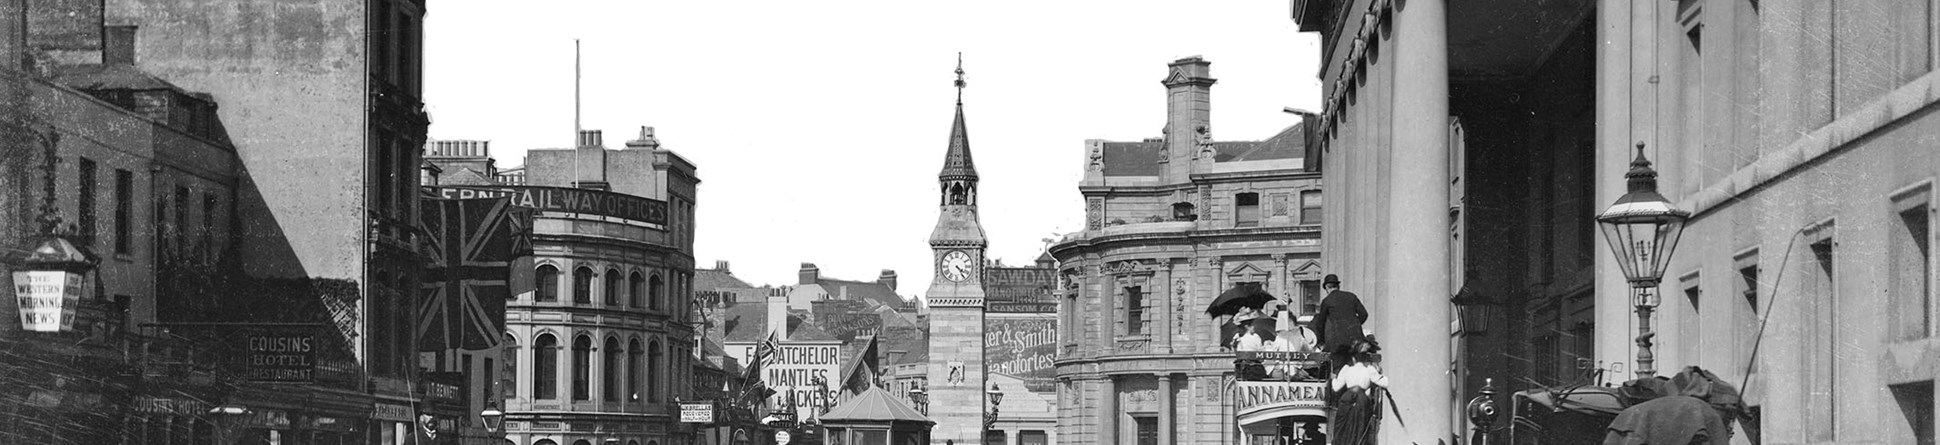 Black and white archive photograph of a busy street scene.